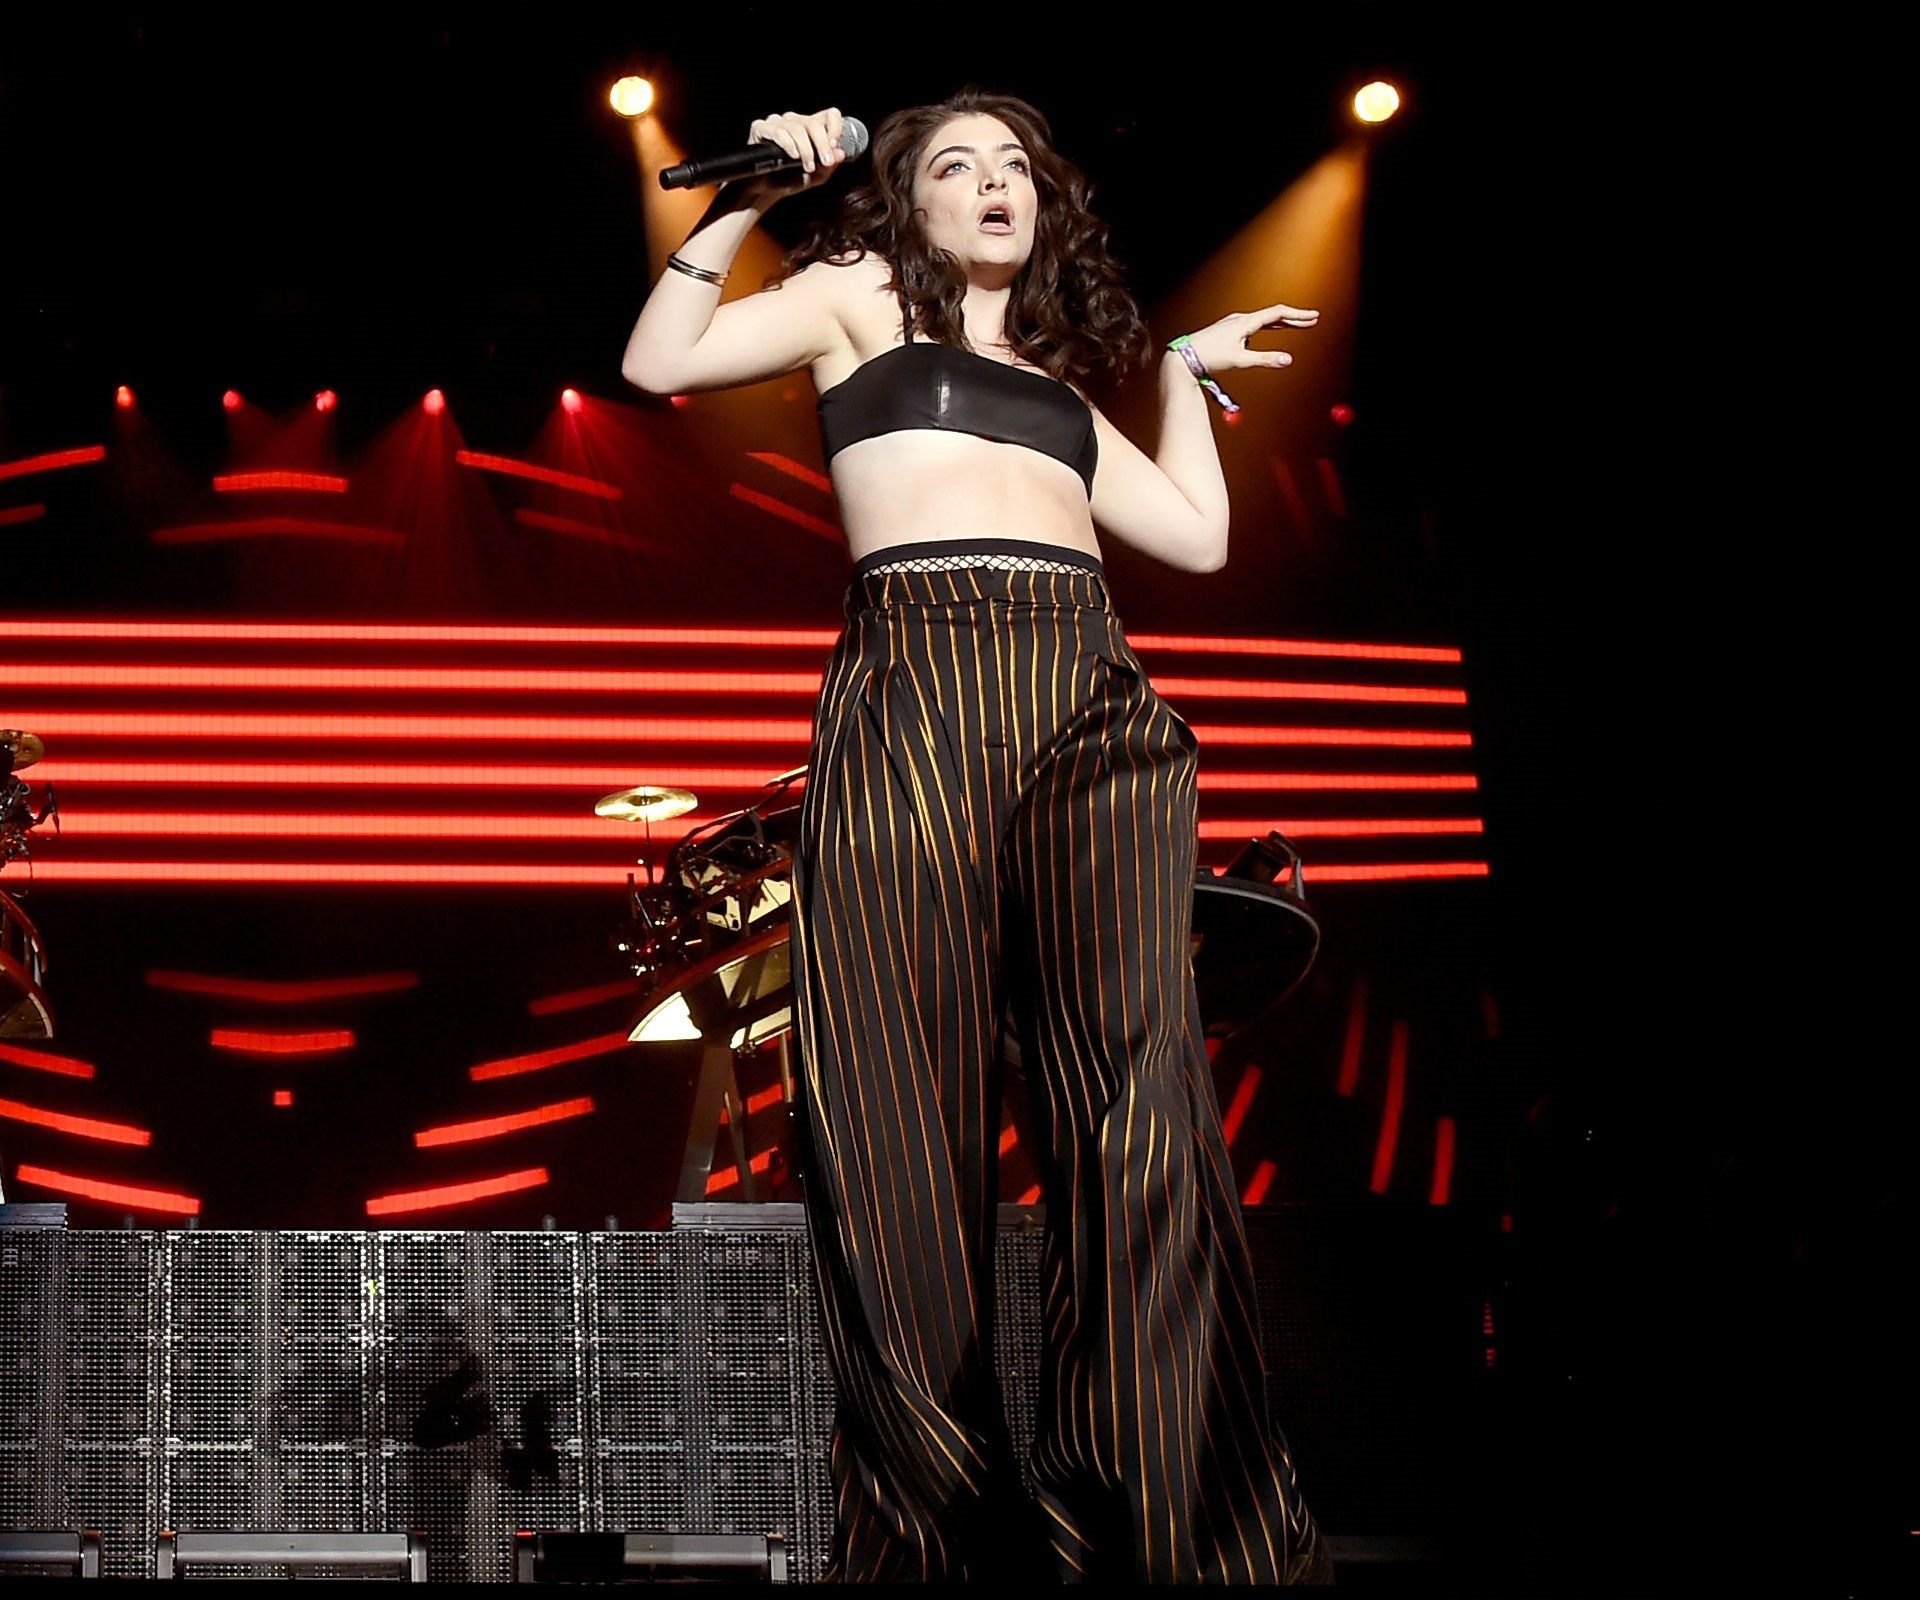 "[**Apr 18, 2016**](http://www.womansday.co.nz/celebrity/new-zealand-celebrities/lorde-sends-crowd-crazy-at-coachella-4501|target=""_blank"") Lorde made a surprise appearance at Coachella Music Festival in California. Photo: Getty."